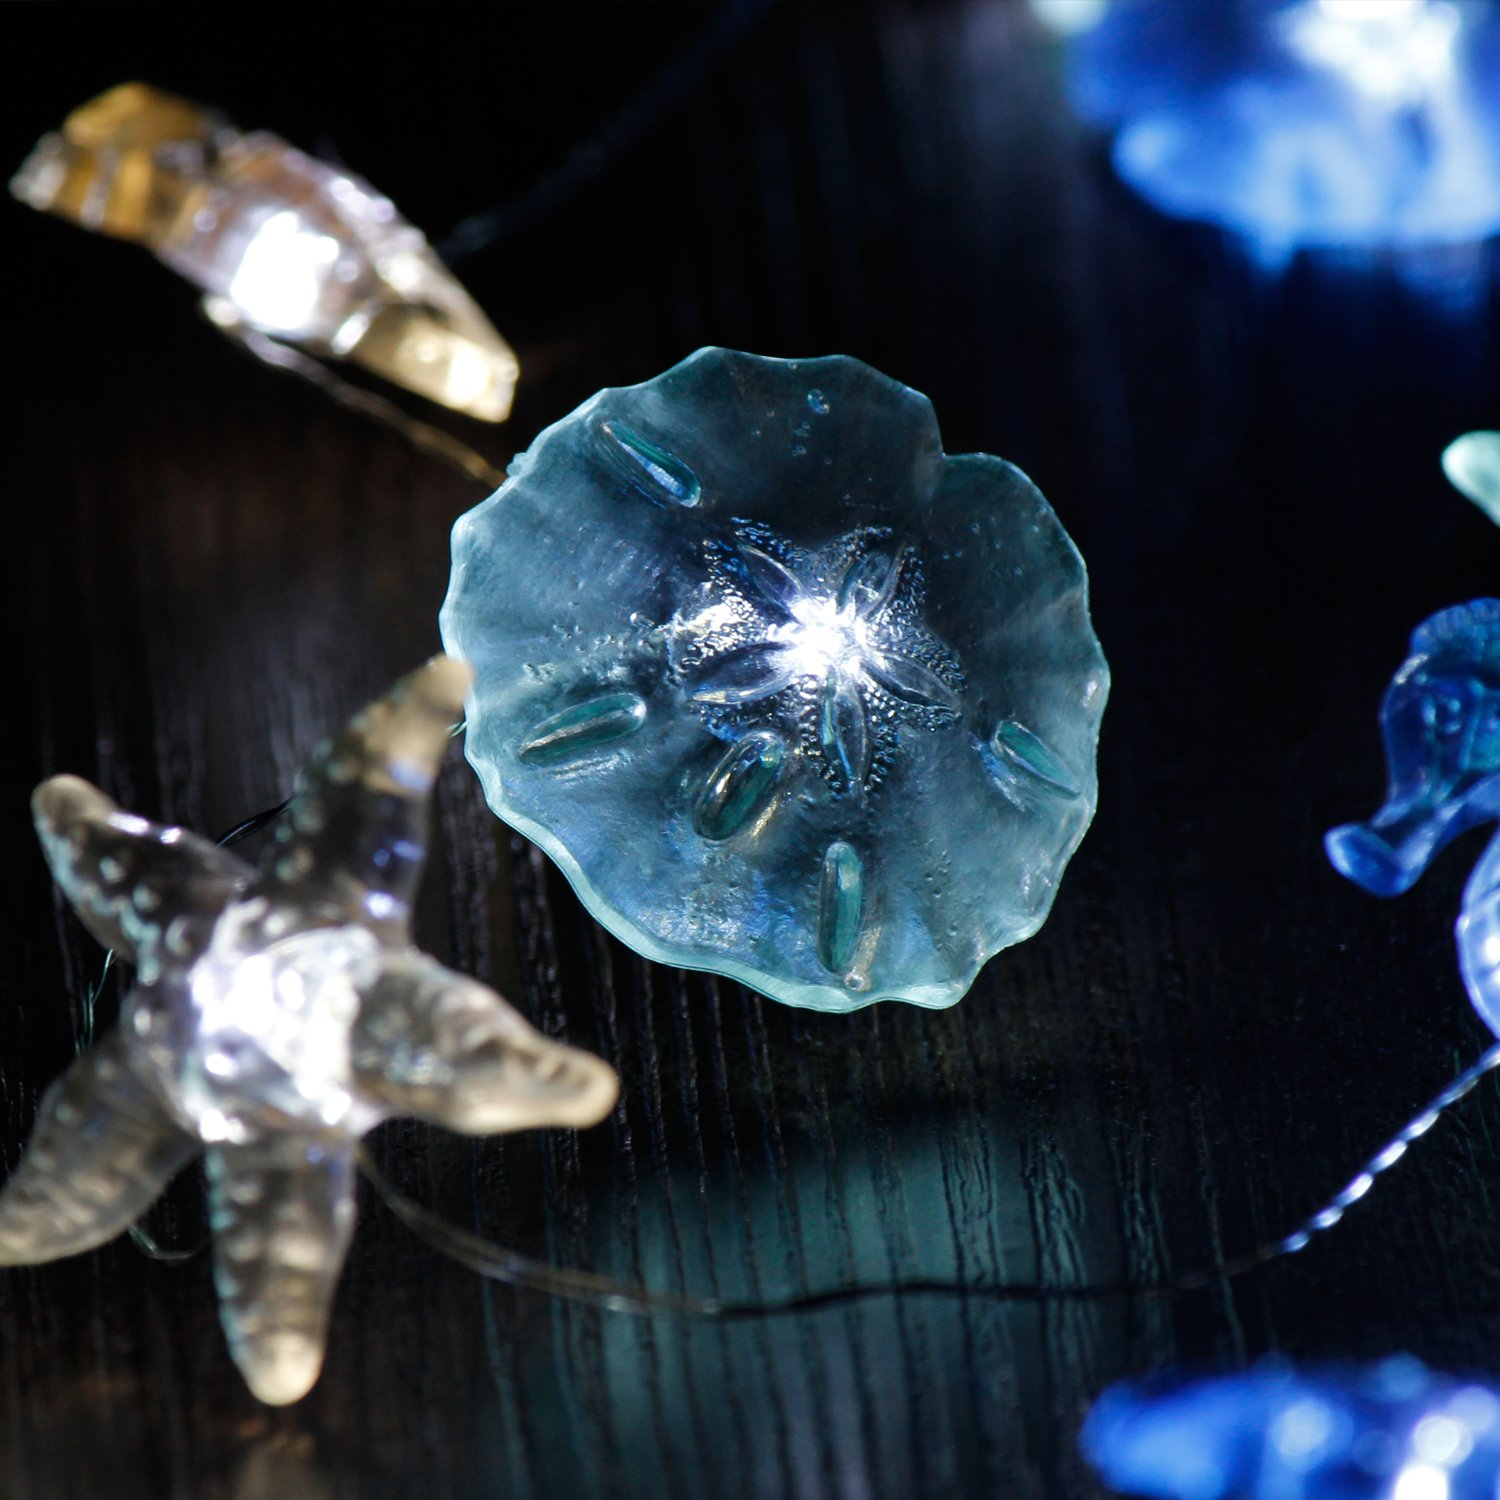 Impress Life Nautical Theme Decorative String Lights, Under The Sea Sand Dollars Seahorse Beach Lights with Remote 10 ft 30 LEDs for Covered Outdoor Camping Wedding Birthday Bedroom Parties Ornaments by Impress Life (Image #6)